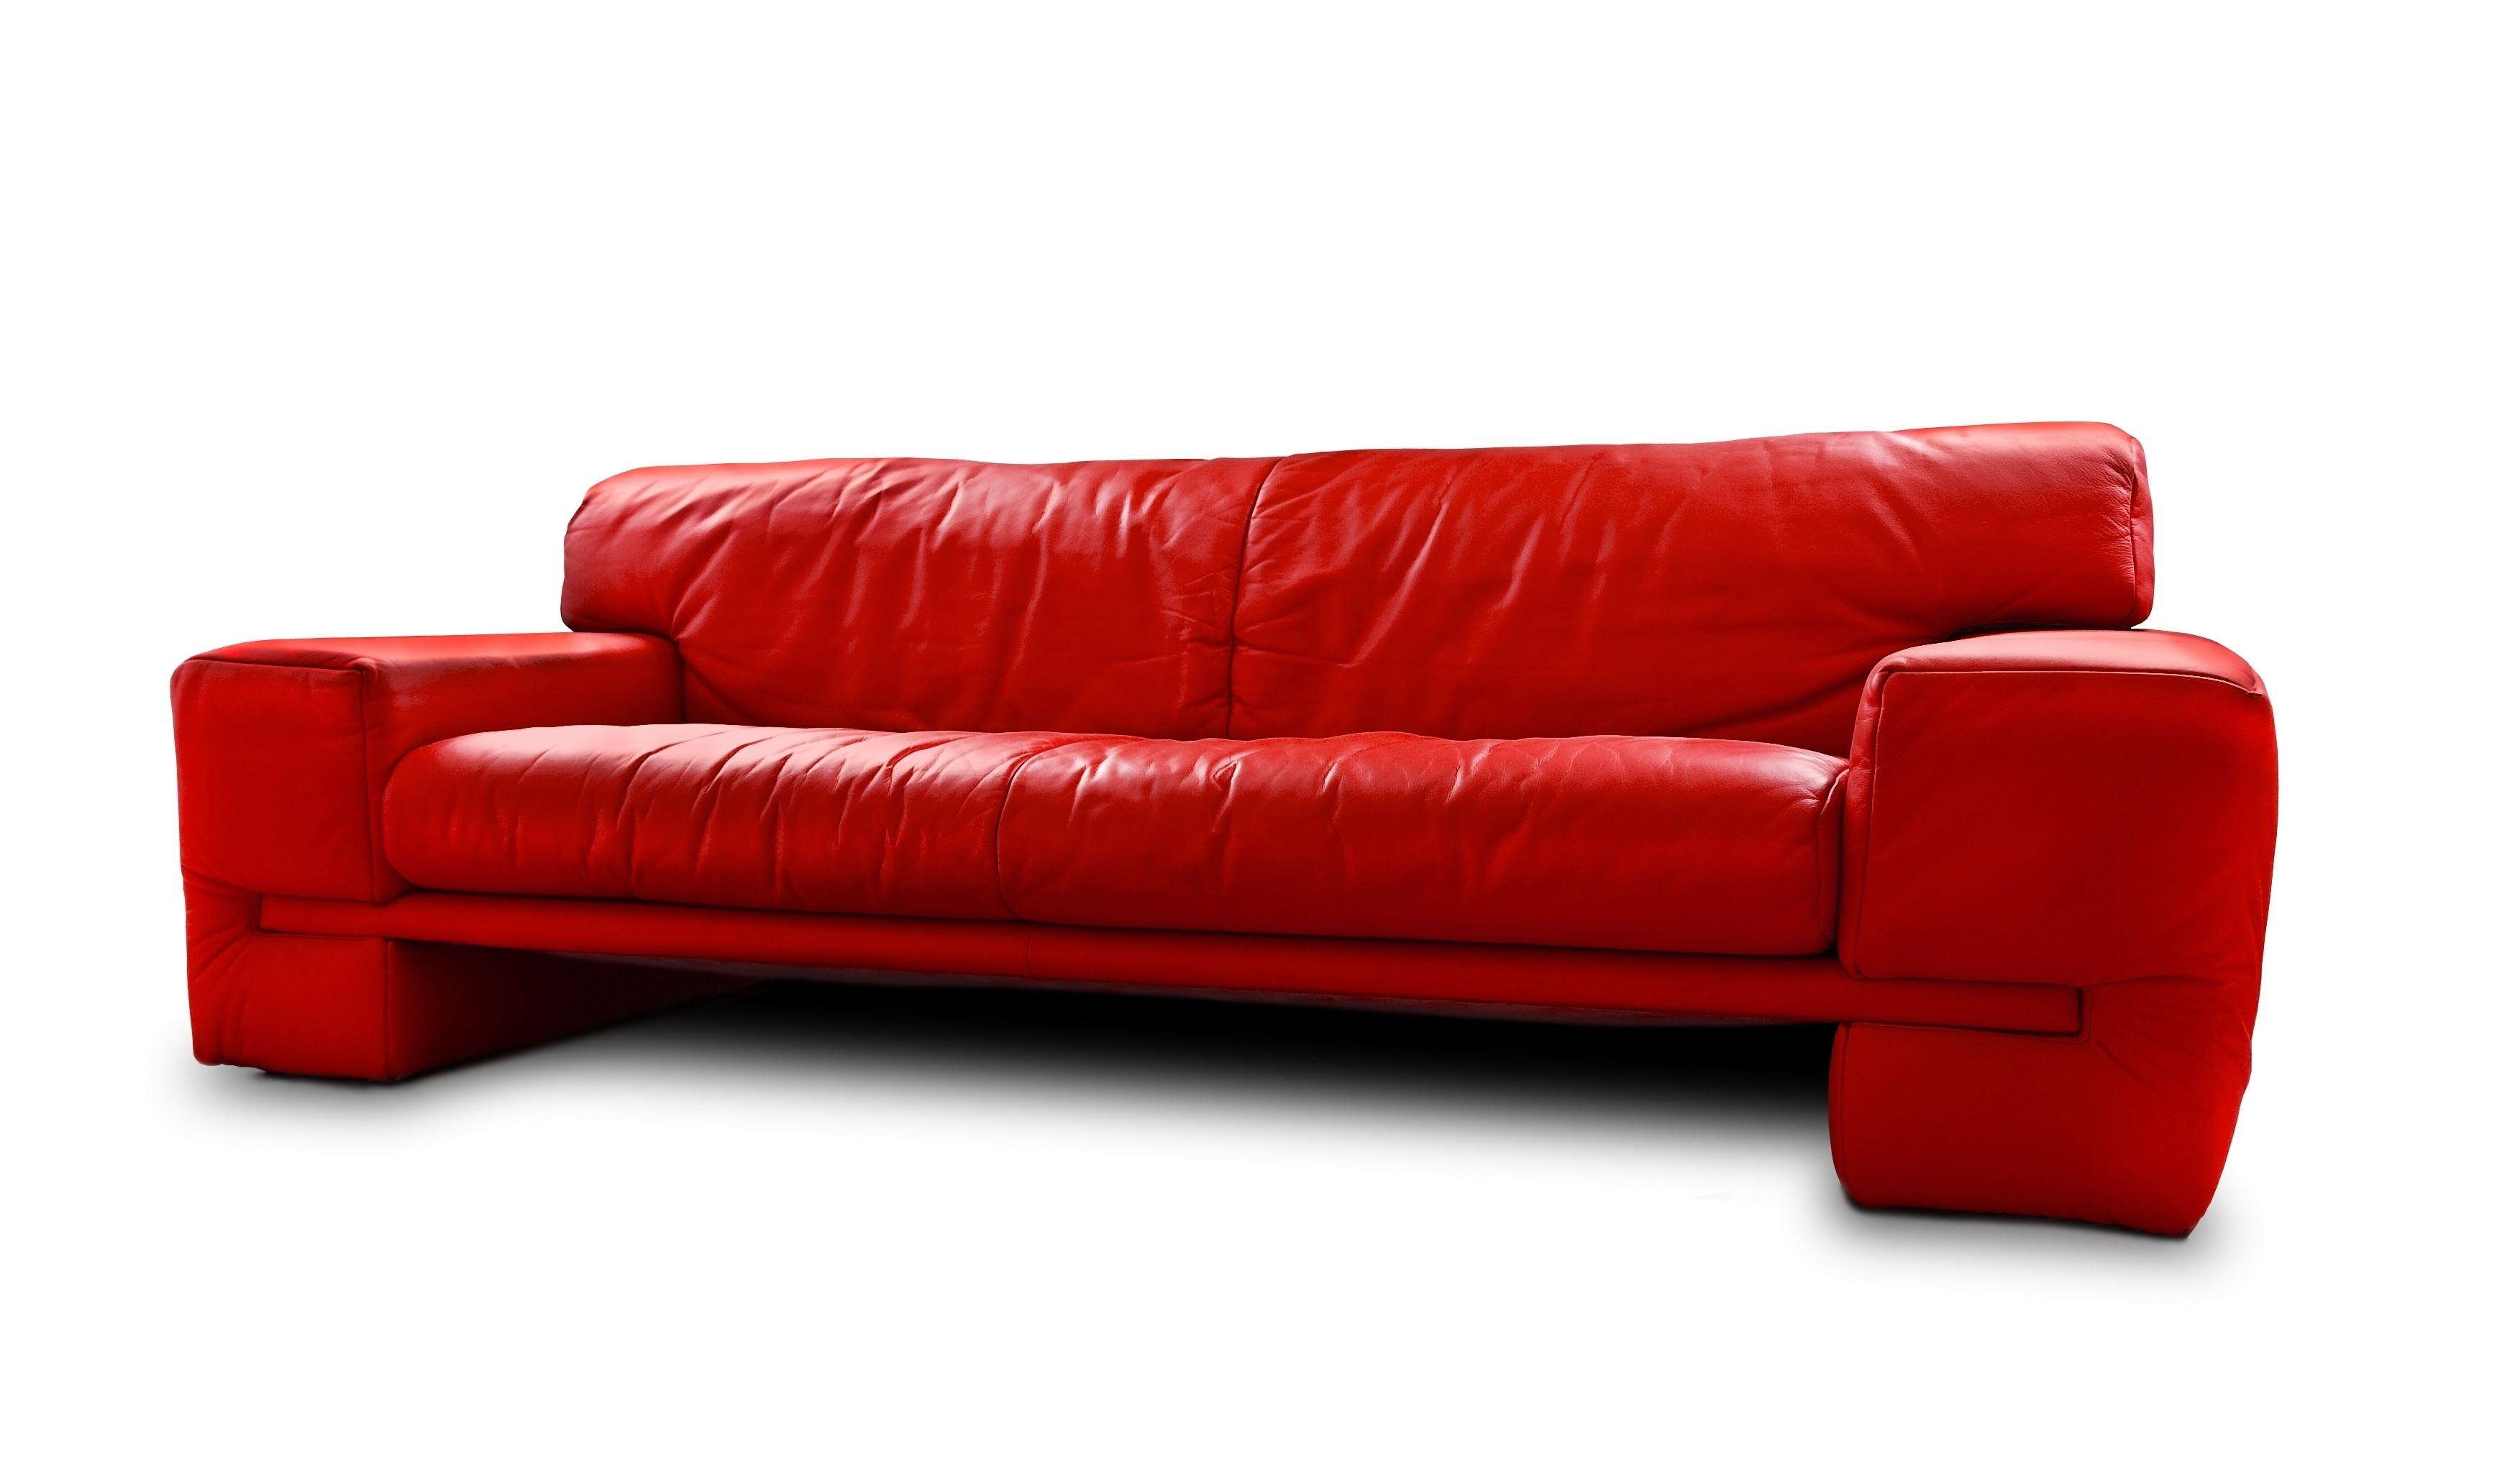 Captivating Red Leather Sleeper Sofa Cool Home Furniture Ideas With With Regard To Red Sleeper Sofas (Image 2 of 12)